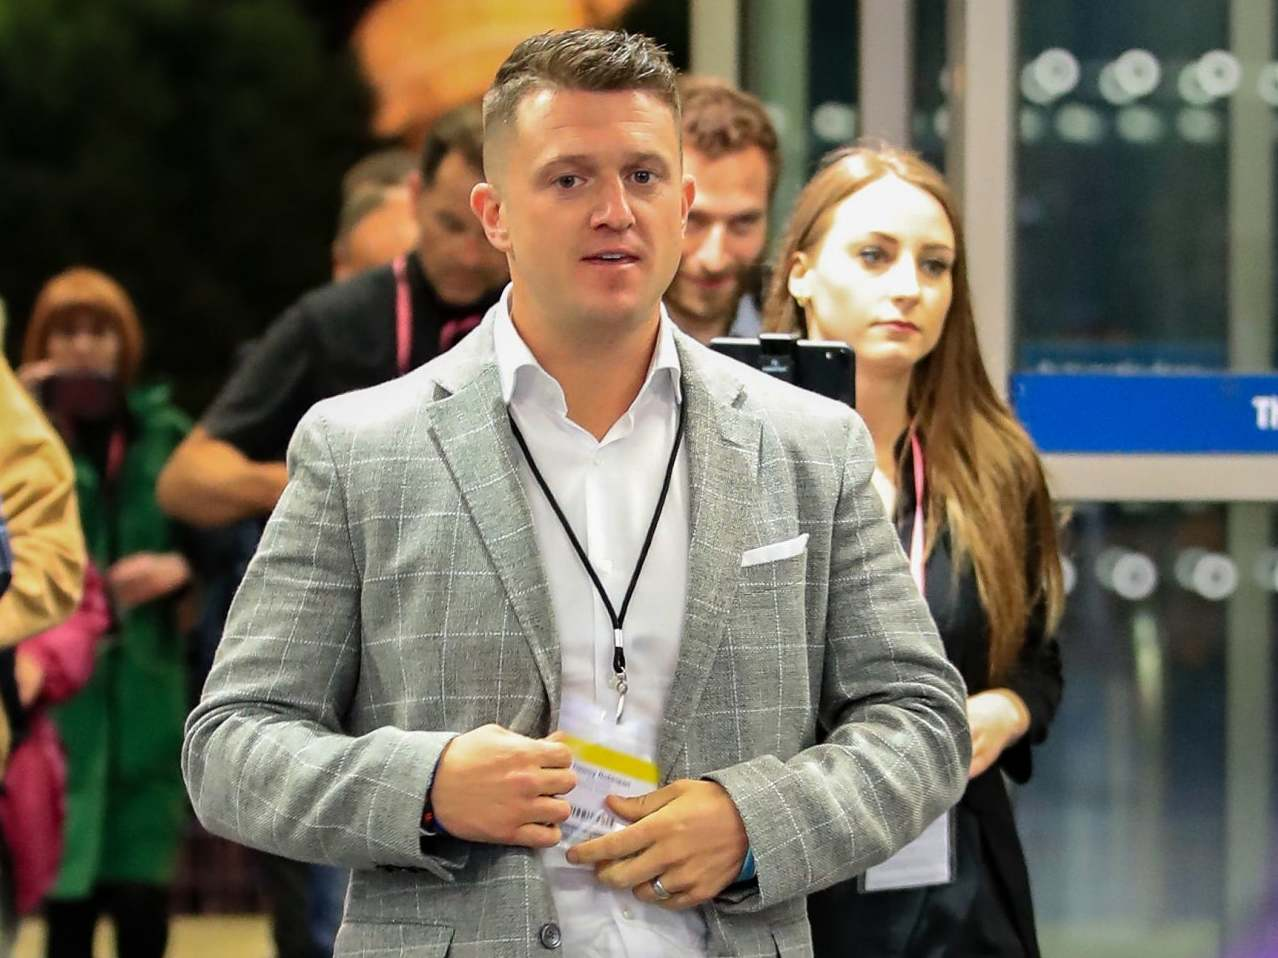 European election results: Tommy Robinson blames social media 'ban' for his crushing defeat in North West